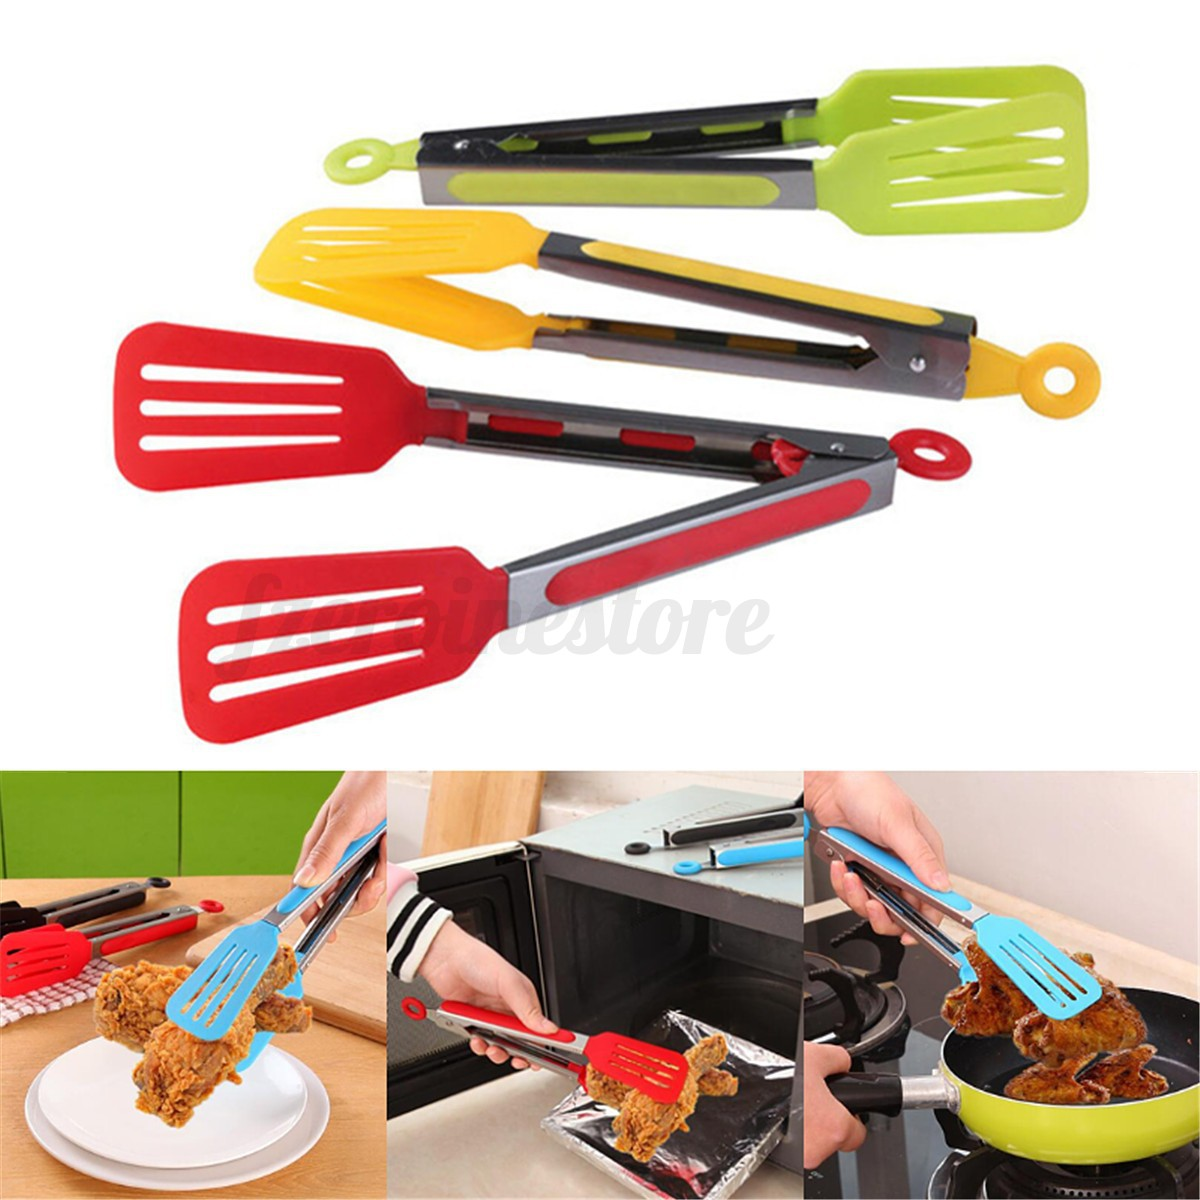 TPR & Stainless Steel Tong BBQ Cooking Food Salad Serving